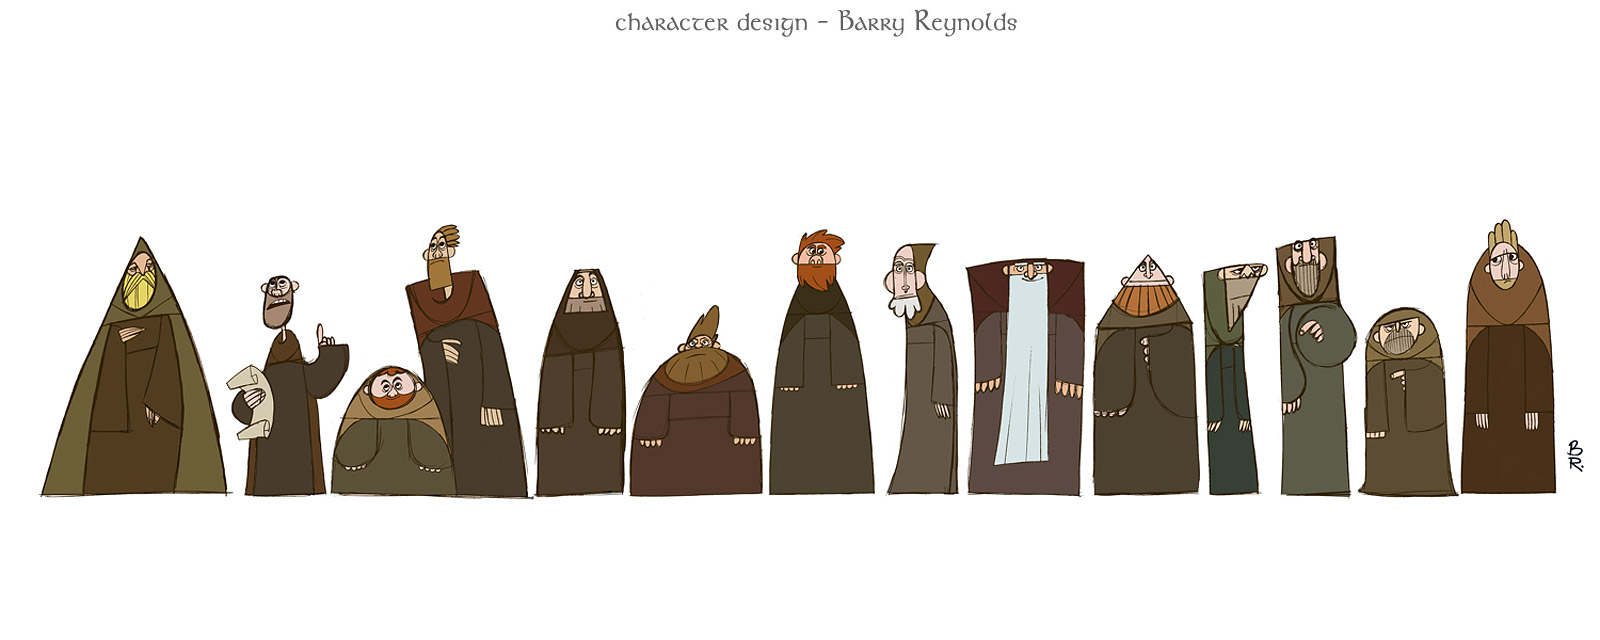 secret_of_kells_size_comparison_23_barry_reynolds.jpg